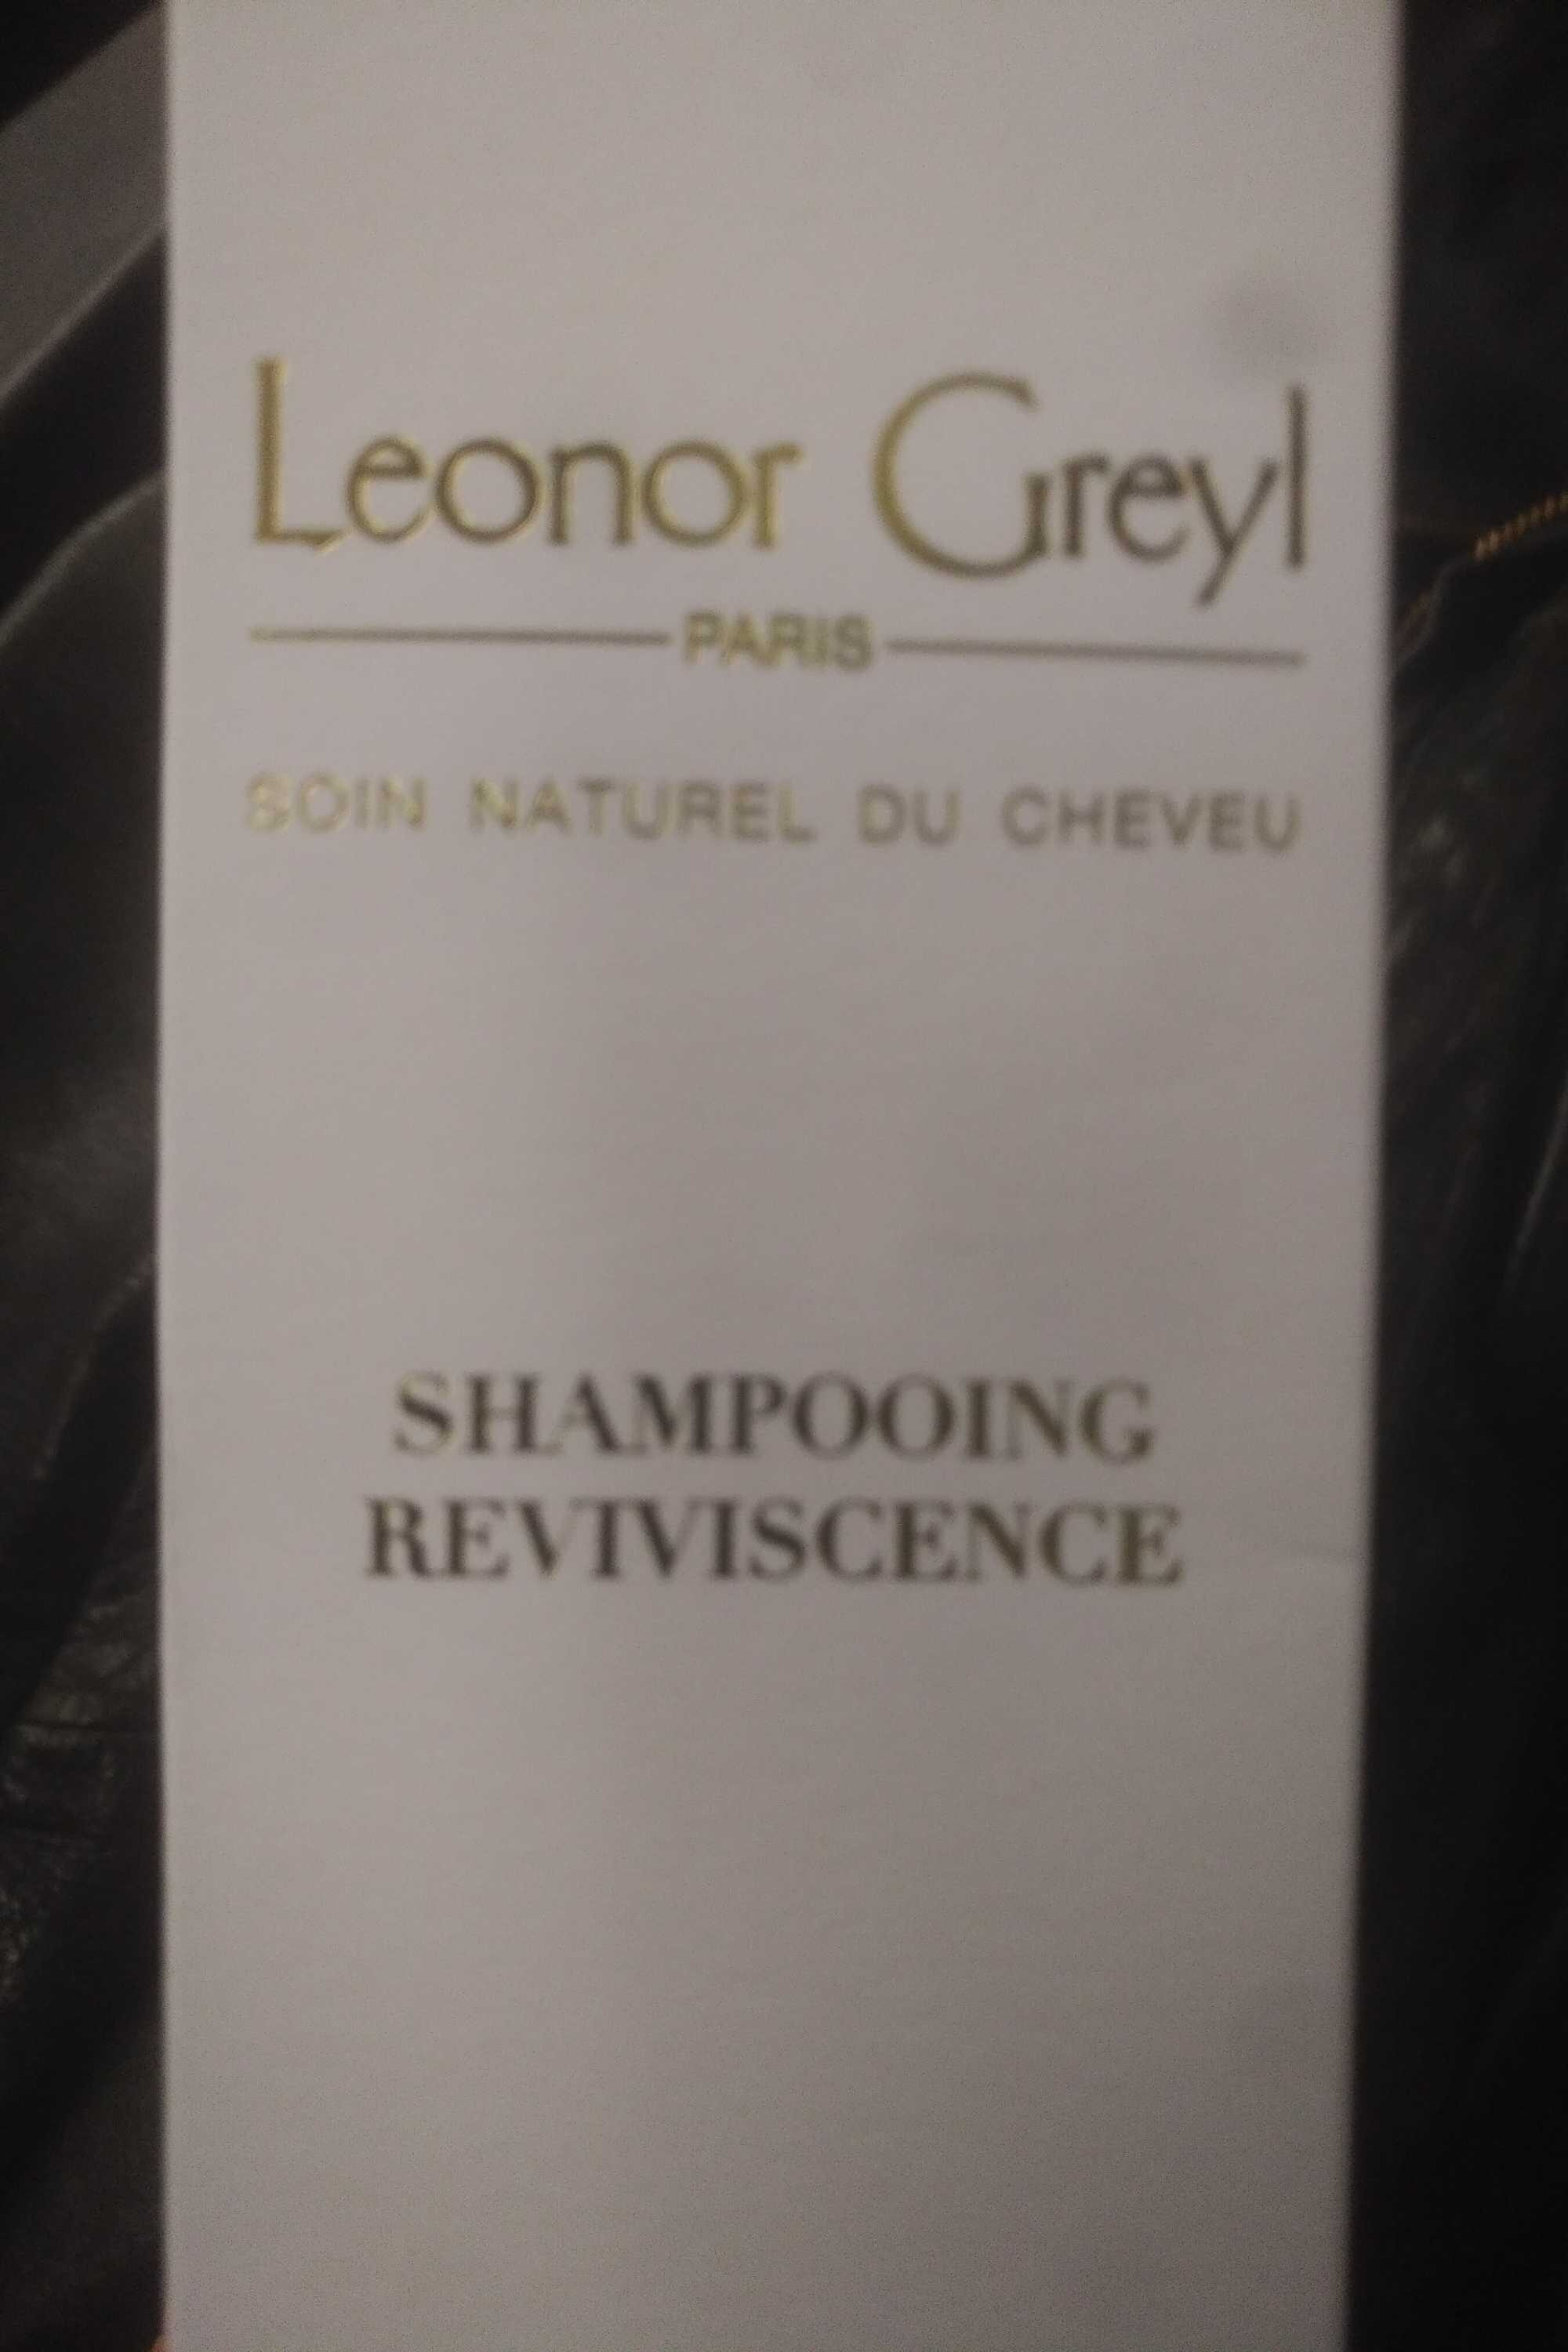 Shampooing reviviscence - Product